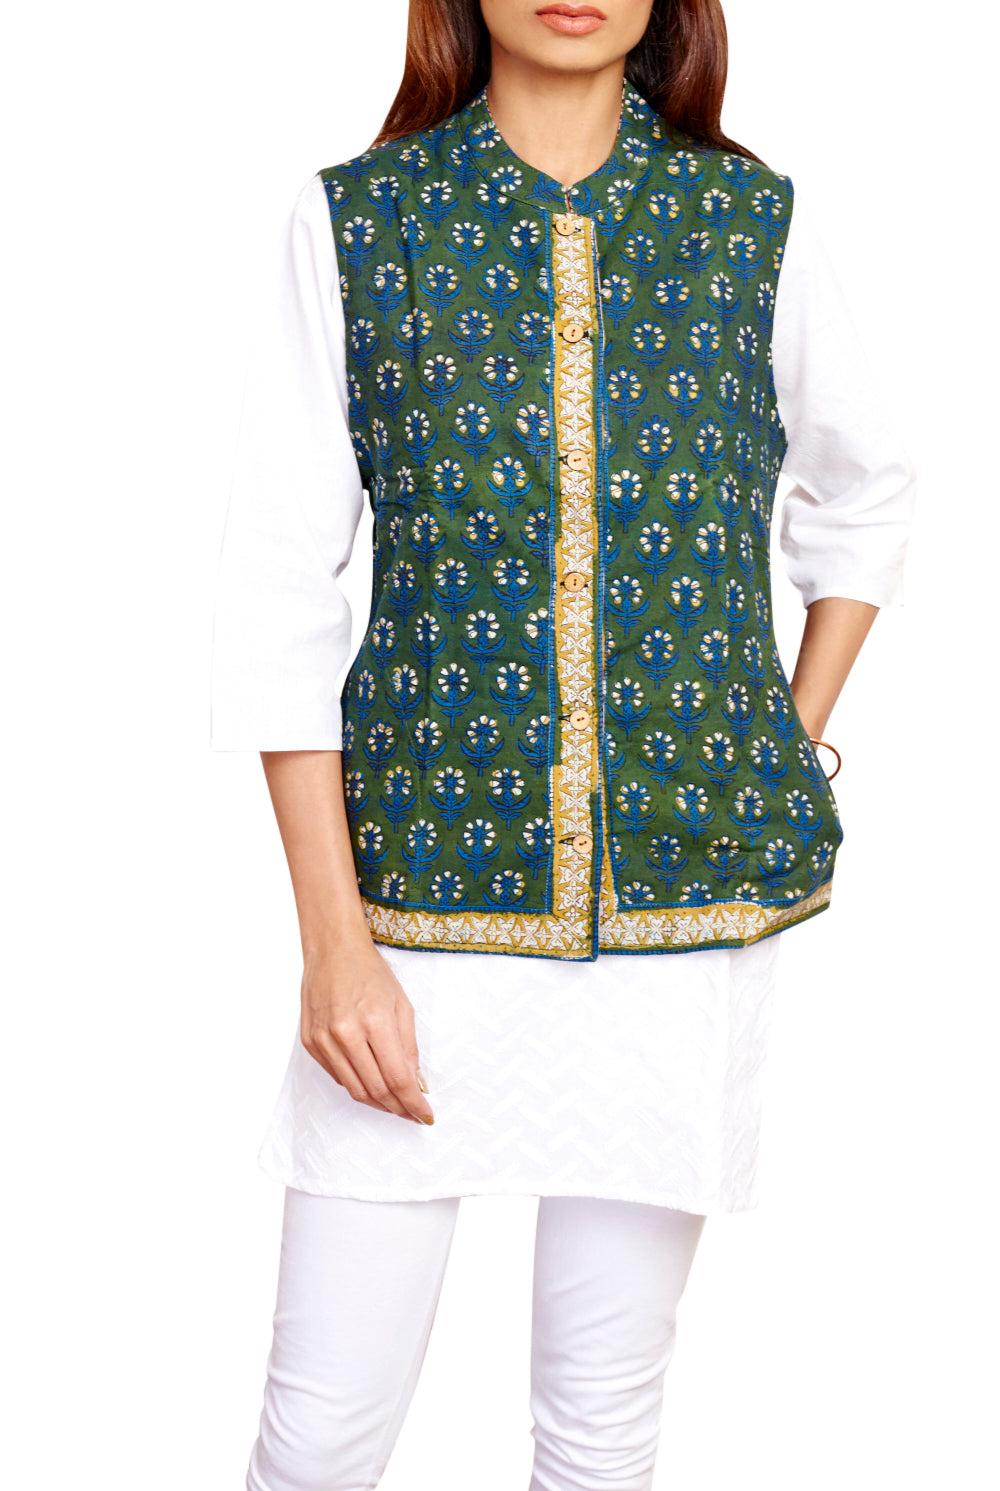 Fern Green and Canvas Cream Rajasthani block Print Handloom Reversible Jacket - GleamBerry